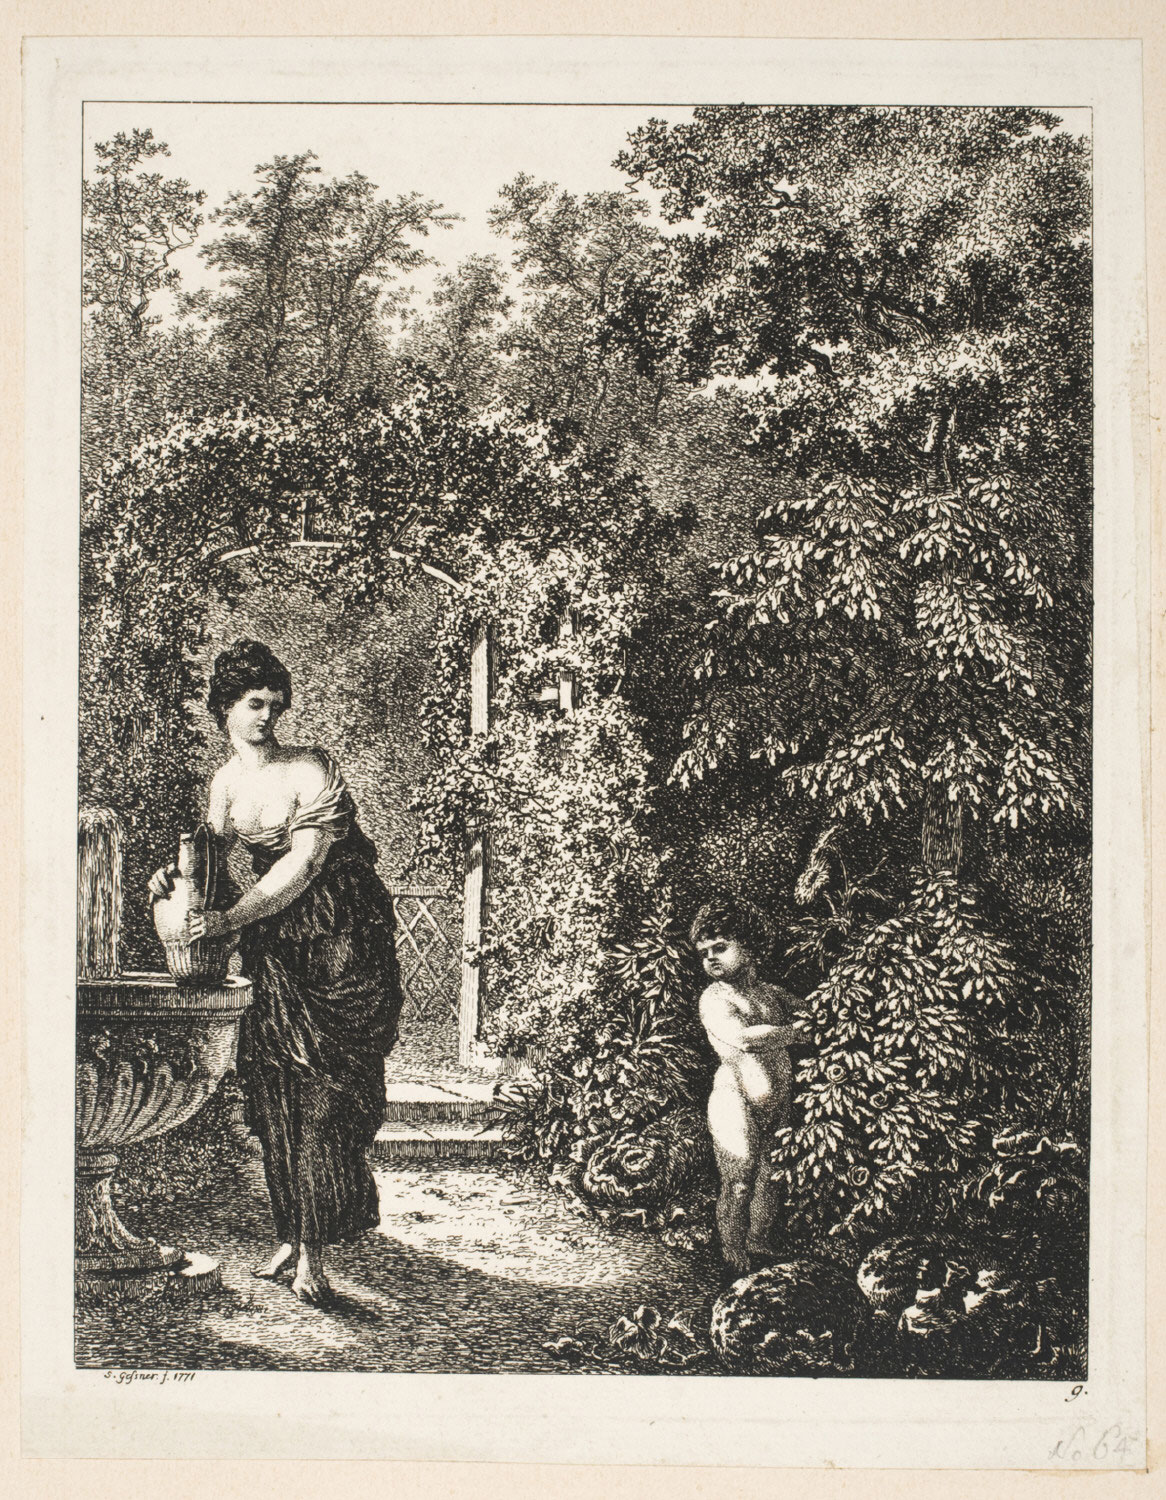 Cupid Visiting a Girl in a Garden